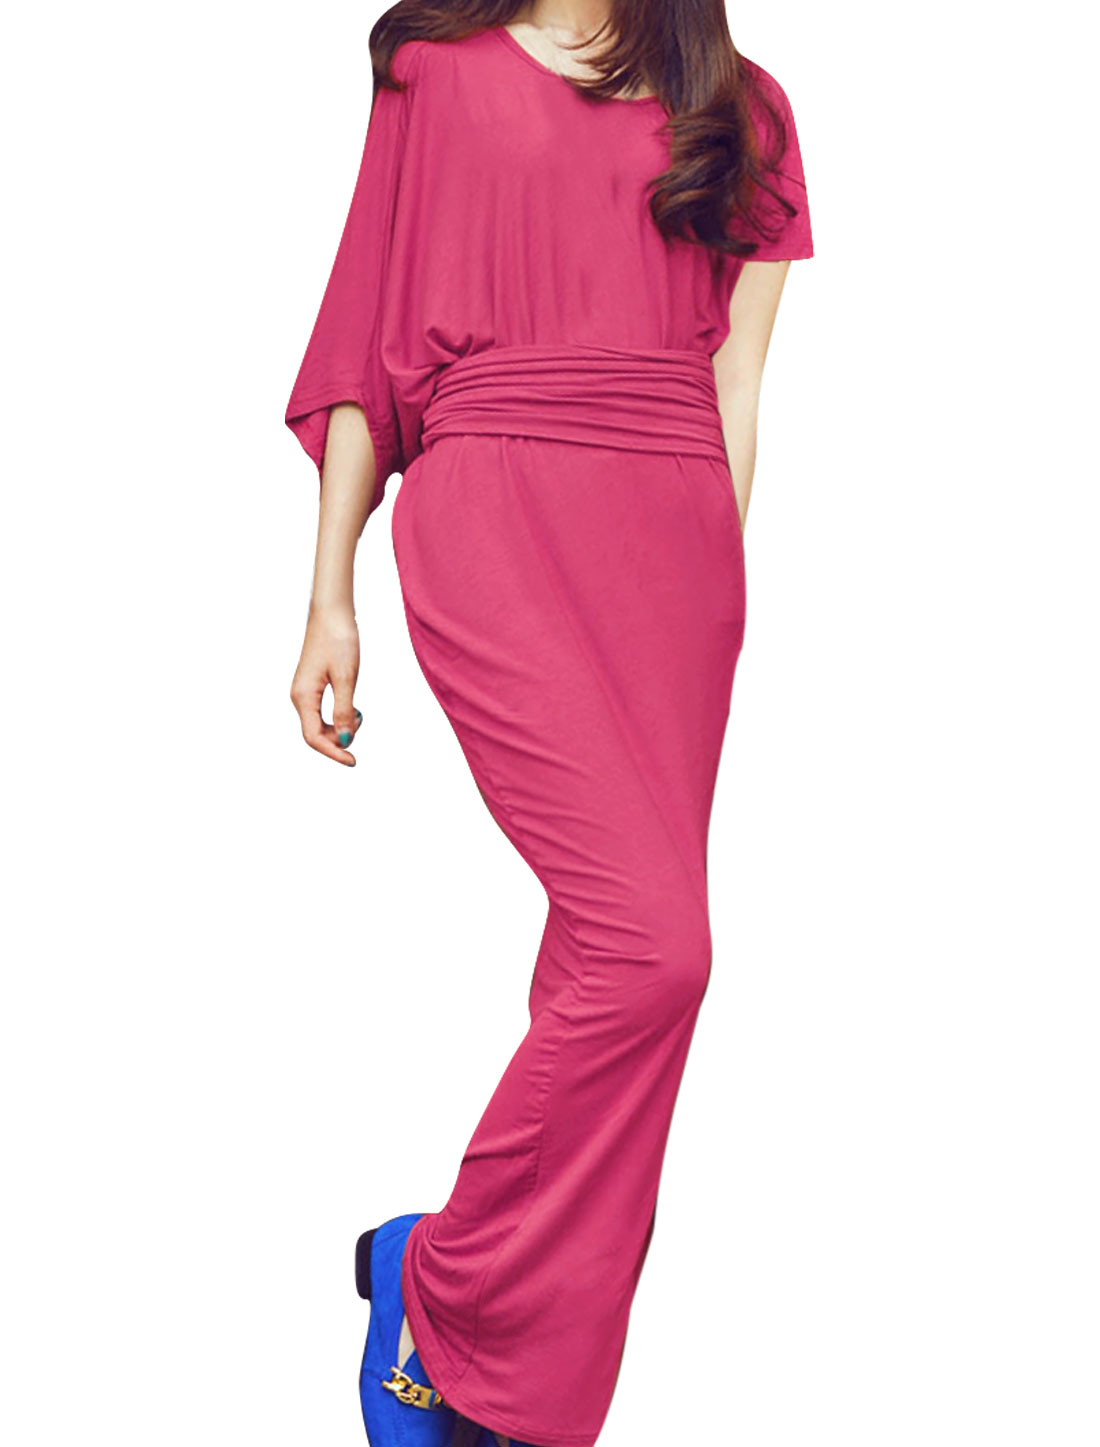 Lady Dipped Hem Solid Color Stretchy Fashional Dress Fuchsia S